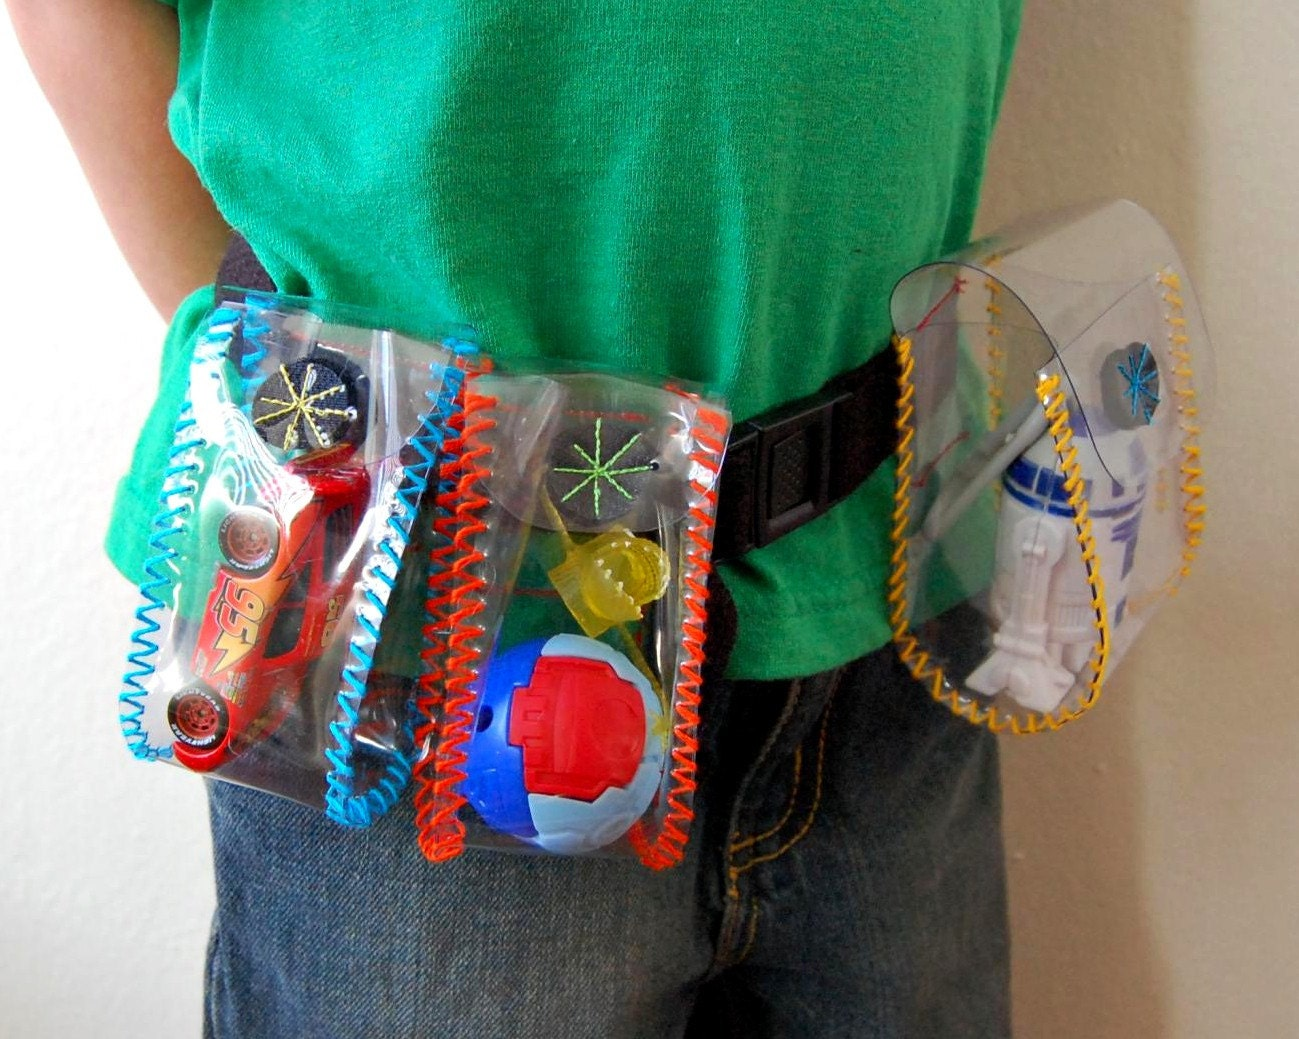 Clear Vinyl Toy Holster Utility Belt By Marigoldhaske On